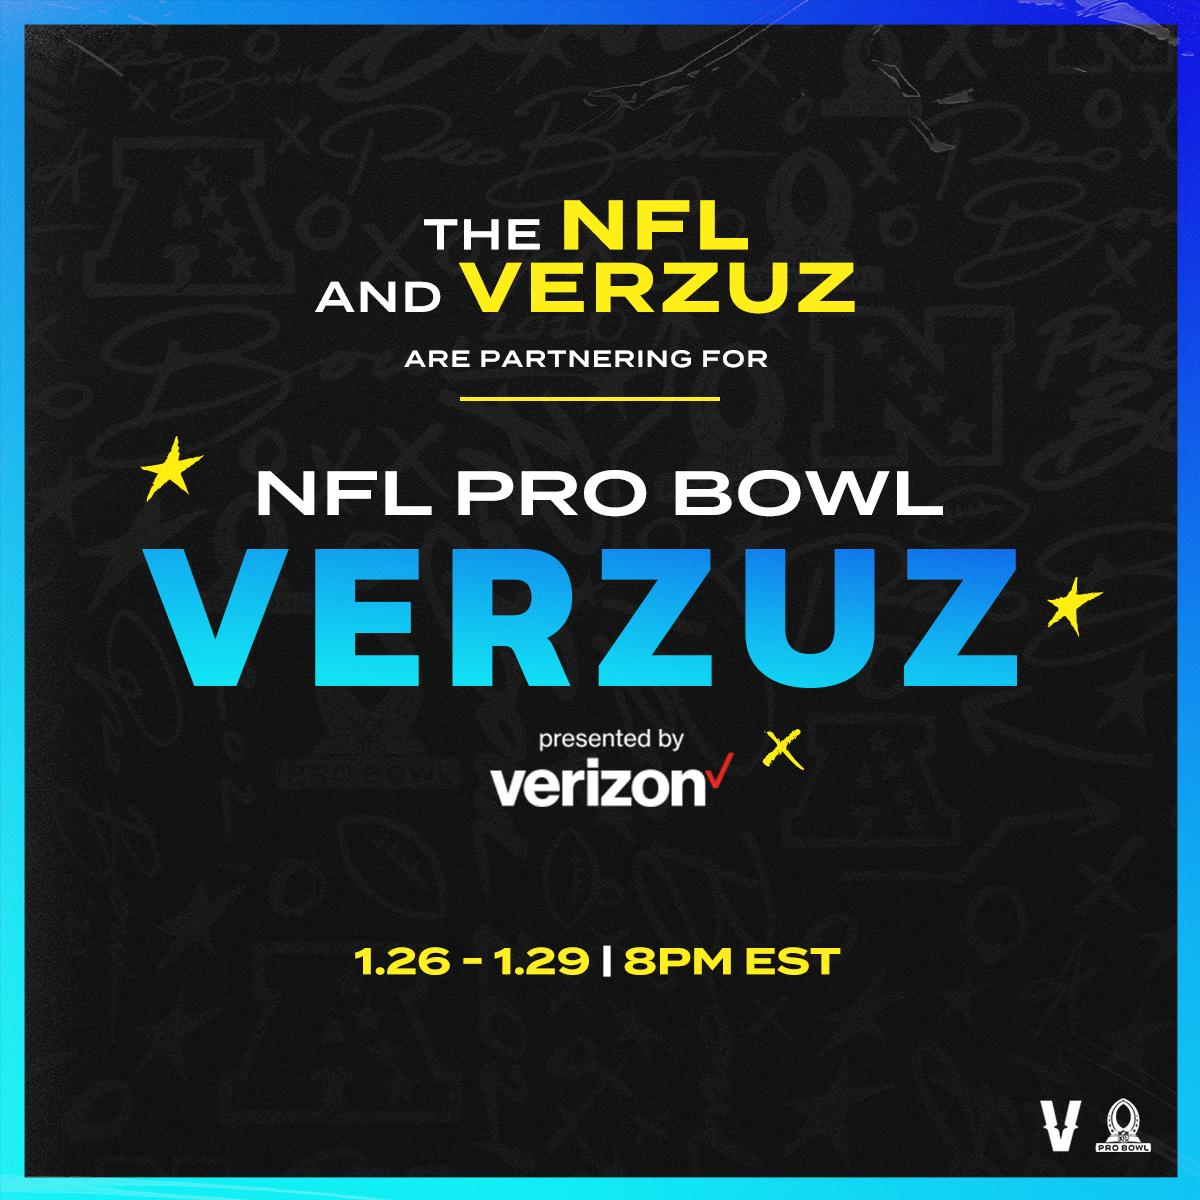 2021 Pro Bowl 🤝 @verzuzonline  THE PAPERWORK IS IN!!! Watch some of today's #NFL stars go head to head showcasing their position highlights every night (Jan. 26-29)!! The lineup and guests are going to be CRAZY!!! 🏈📺  Which Pro Bowl players do you want to see? #ProBowlVERZUZ